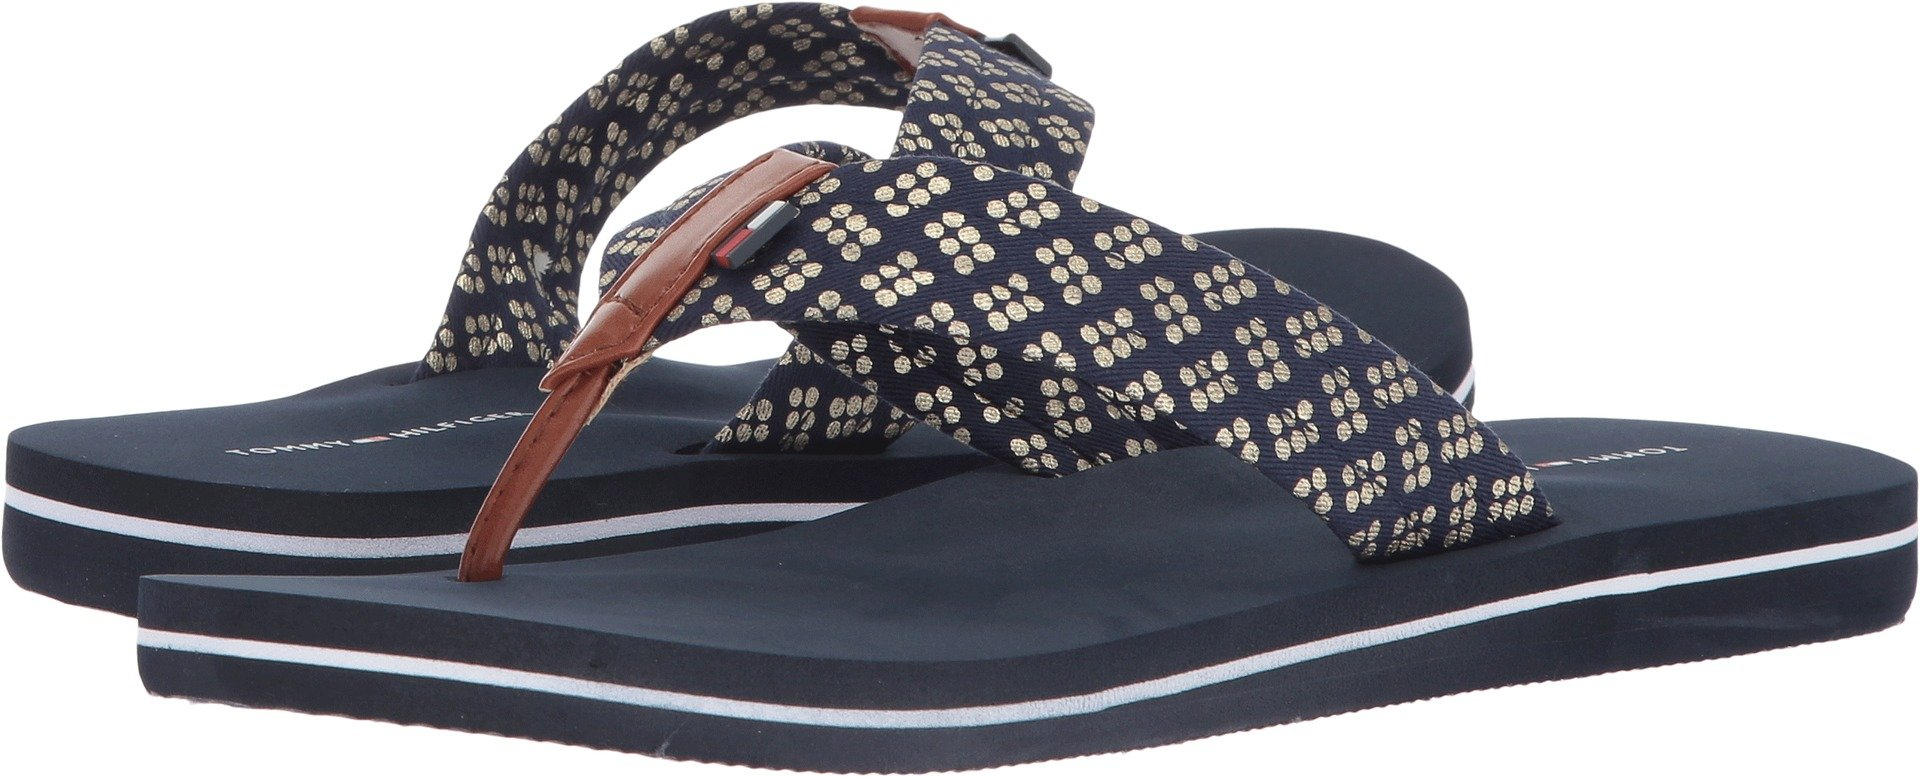 Tommy Hilfiger Women's Carsin2 Blue Multi 7 M US